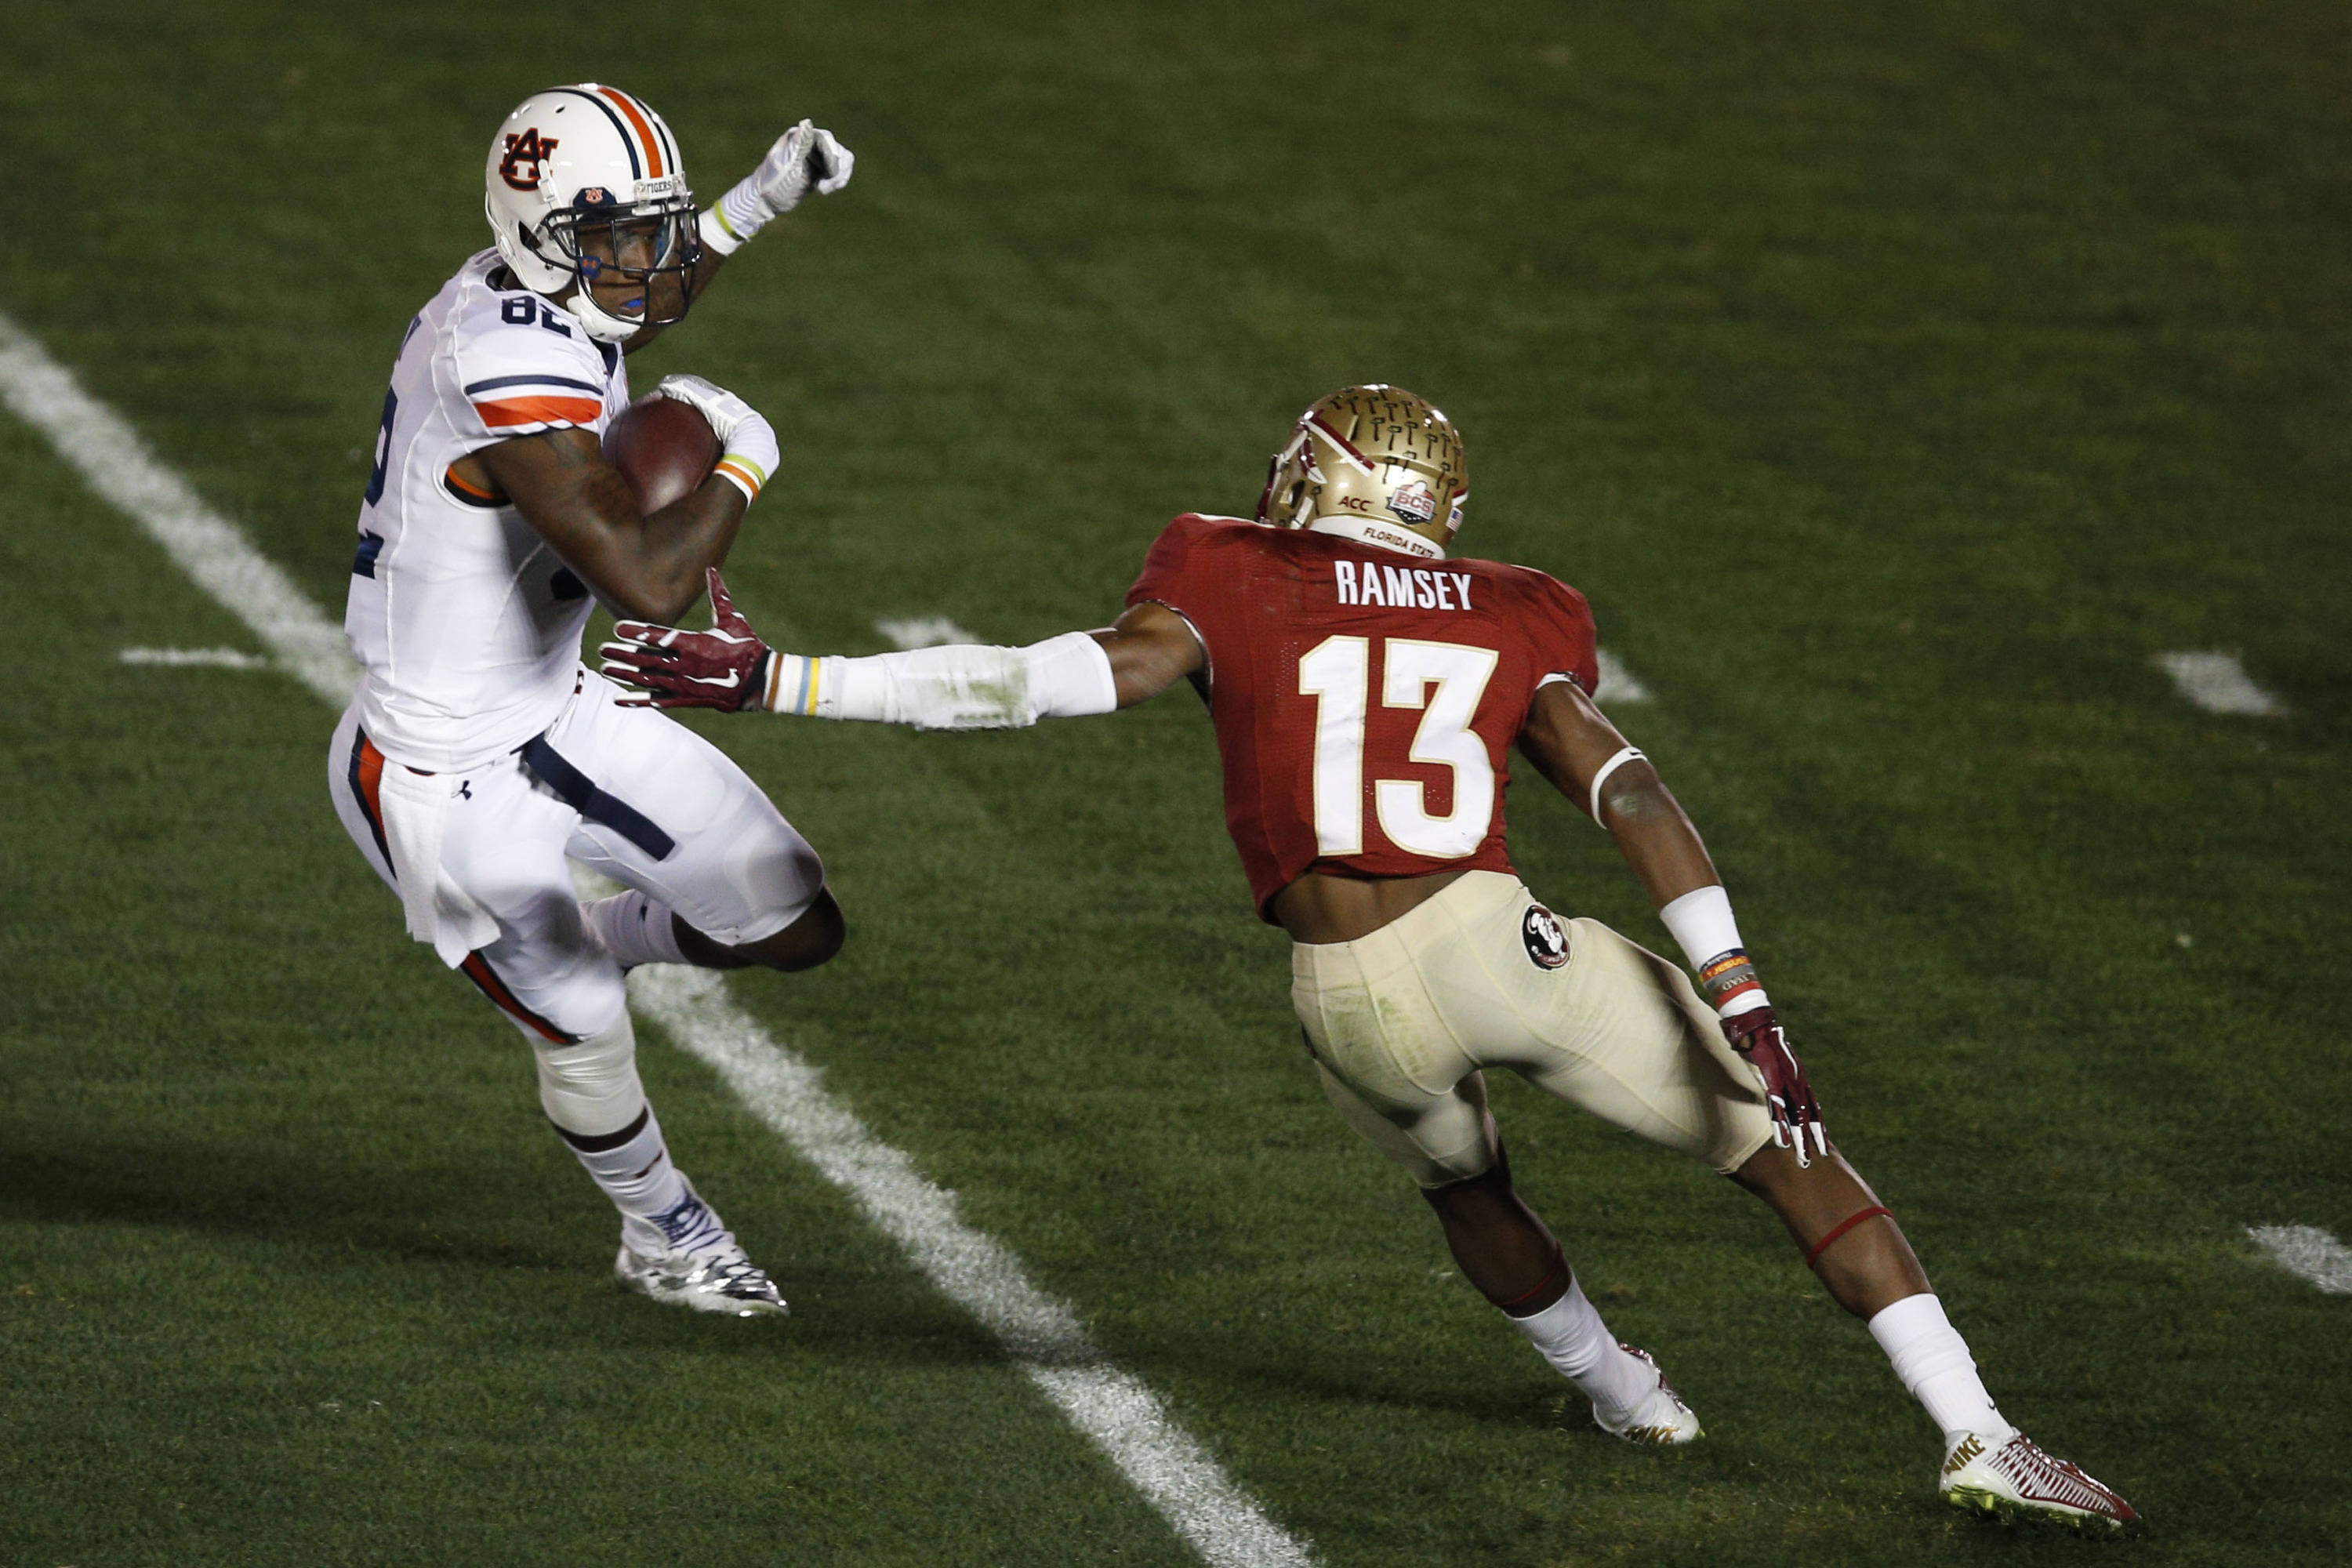 Jan 6, 2014; Pasadena, CA, USA; Auburn Tigers wide receiver Melvin Ray (82) runs the football past Florida State Seminoles defensive back Jalen Ramsey (13) for a touchdown during the first half of the 2014 BCS National Championship game at the Rose Bowl.  Mandatory Credit: Kelvin Kuo-USA TODAY Sports